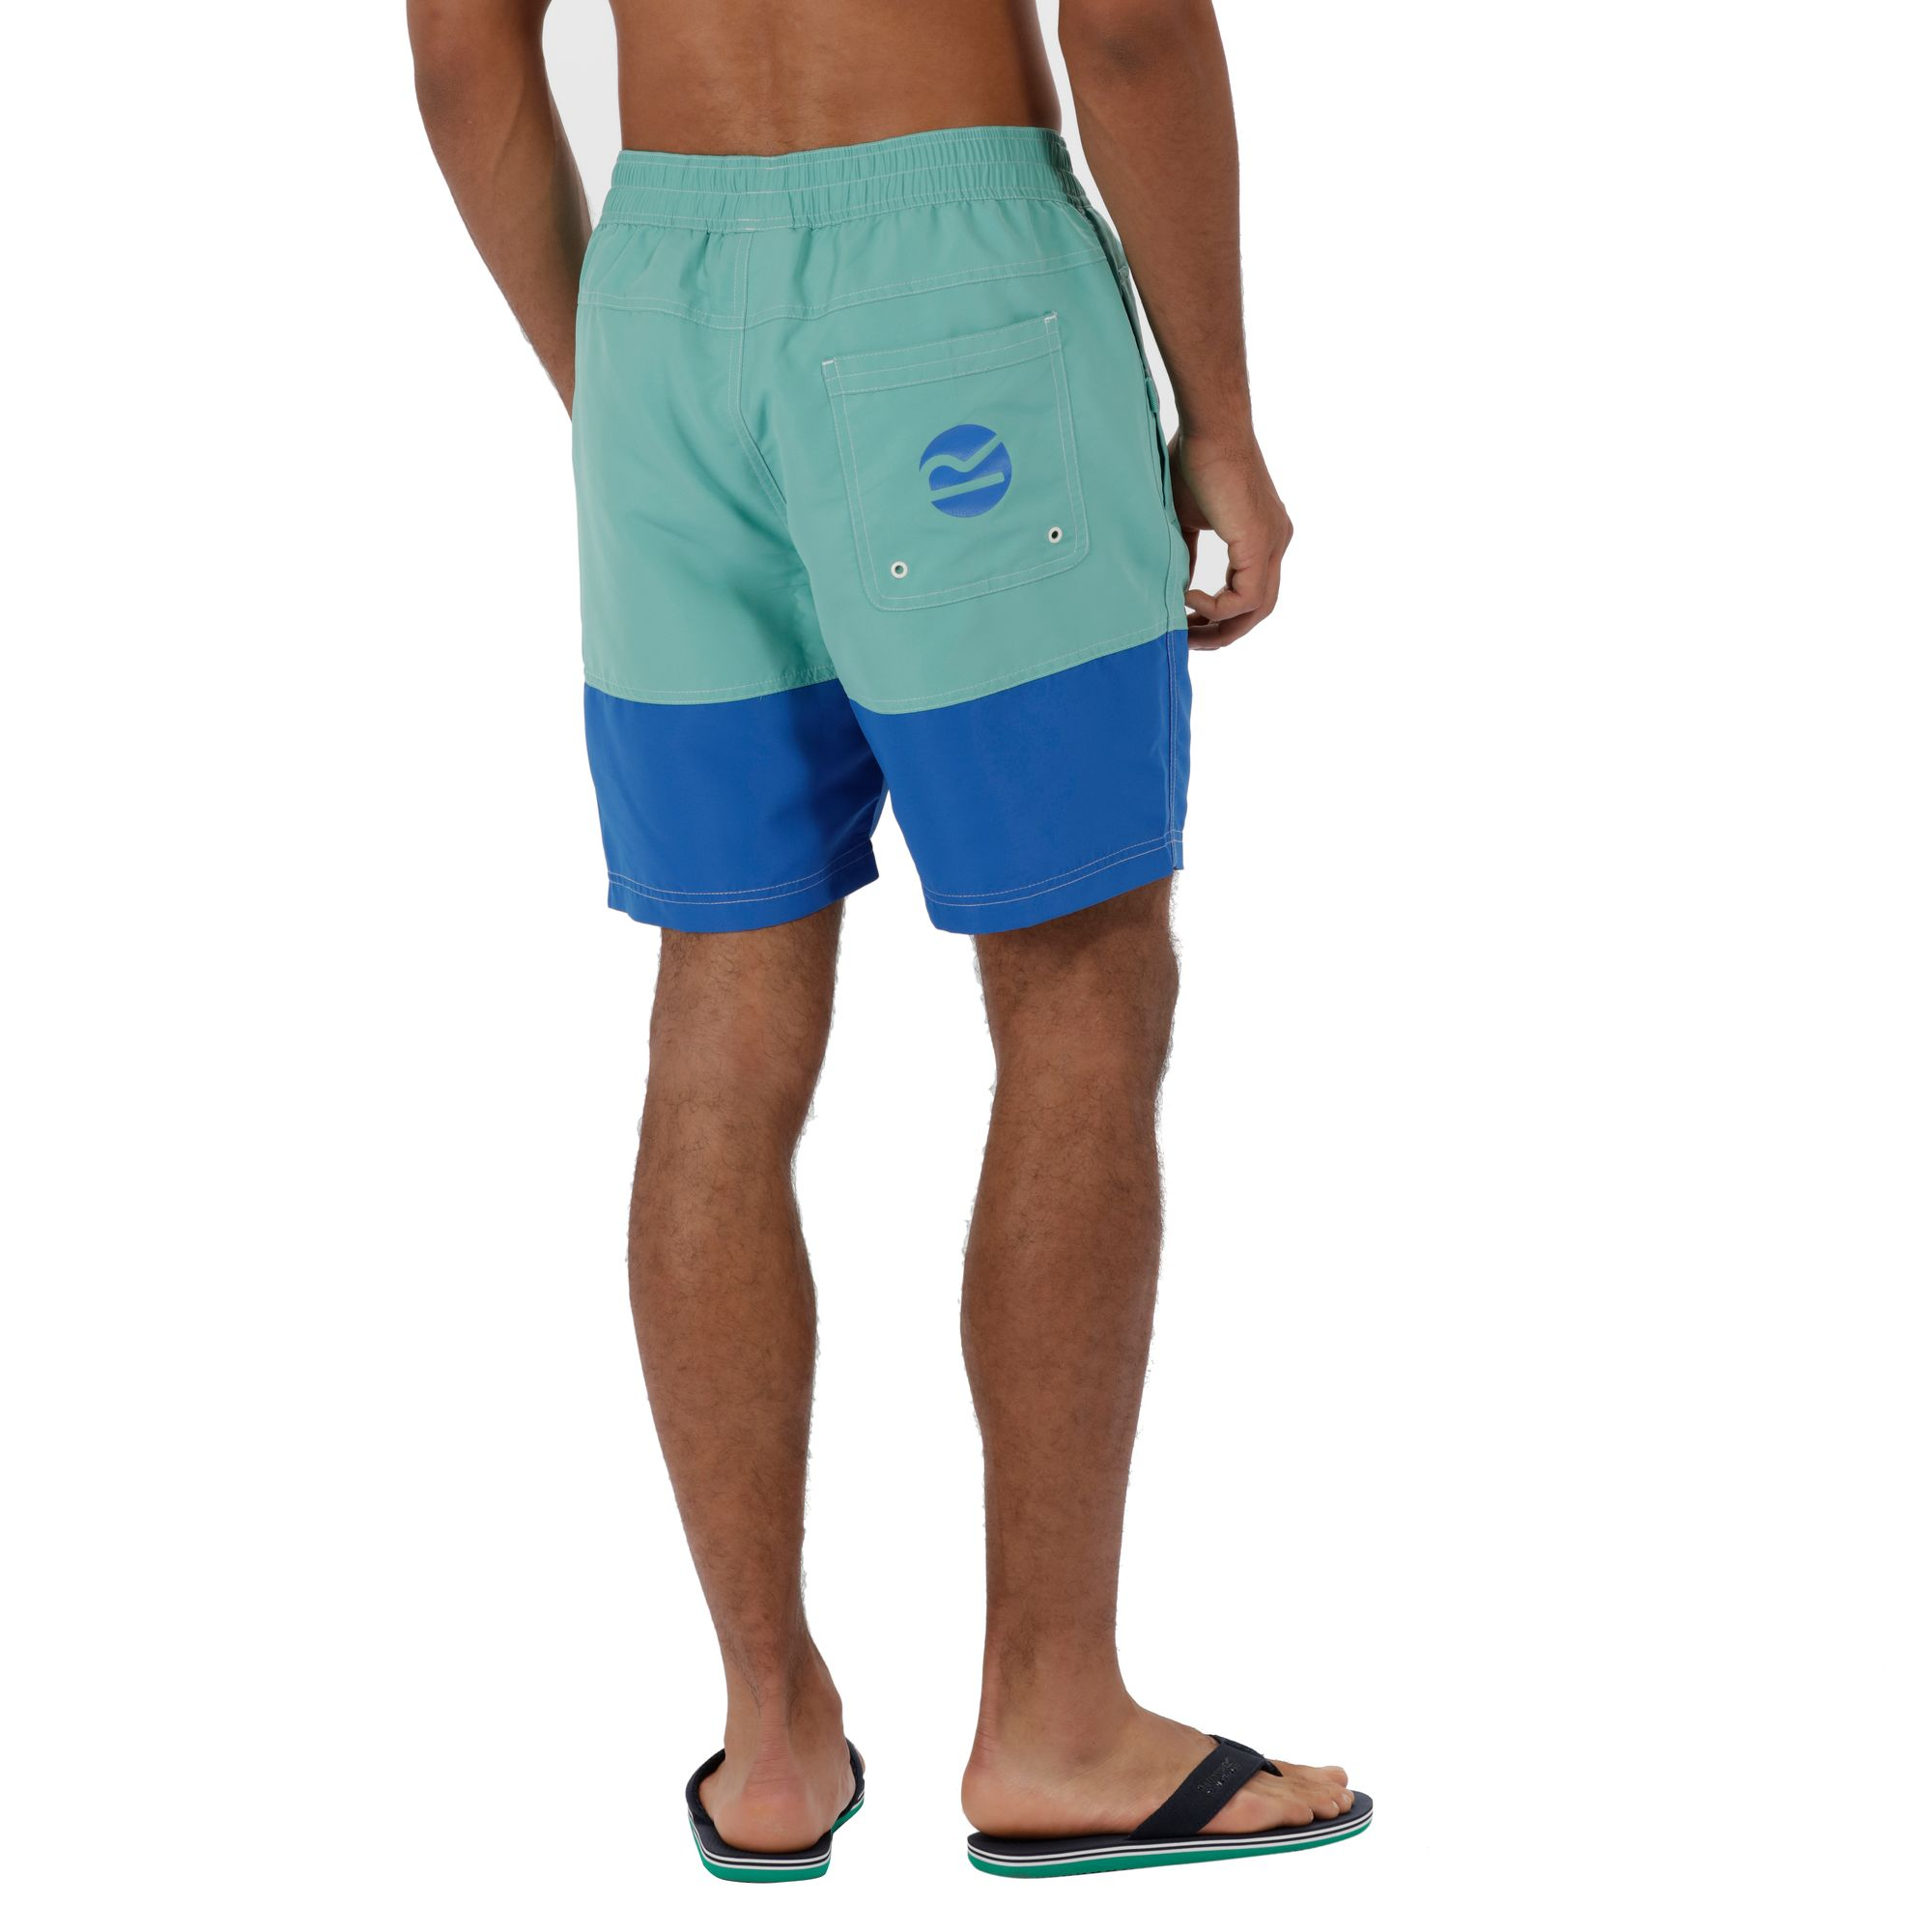 da33a1133e Regatta BRACHTMAR II SWIM SHORTS - Jade Green / Oxford Blue